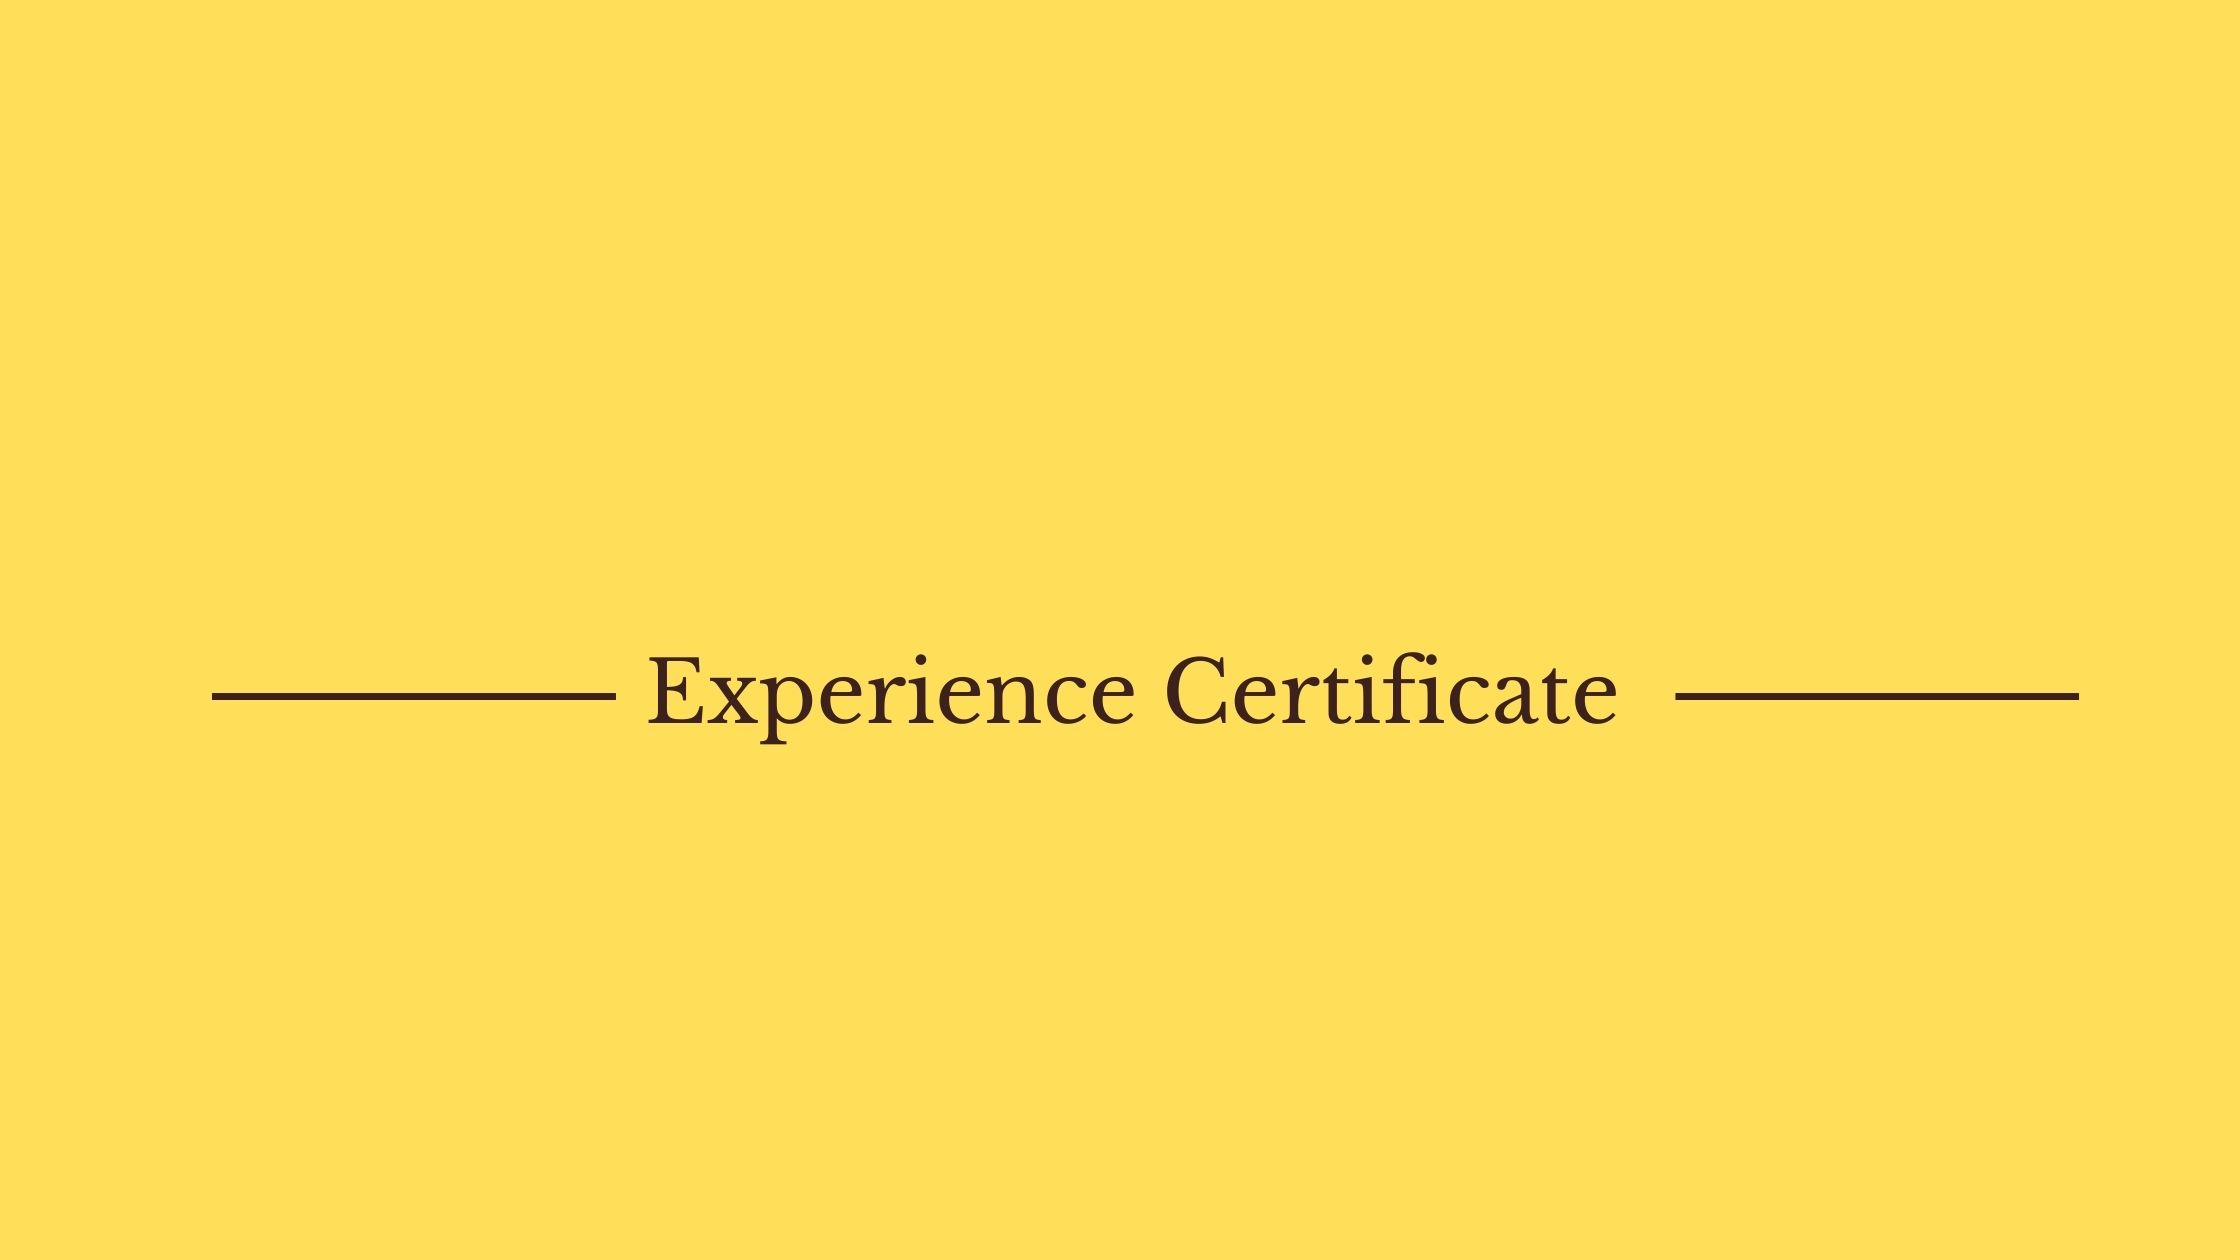 What is experience certificate and how to get it?